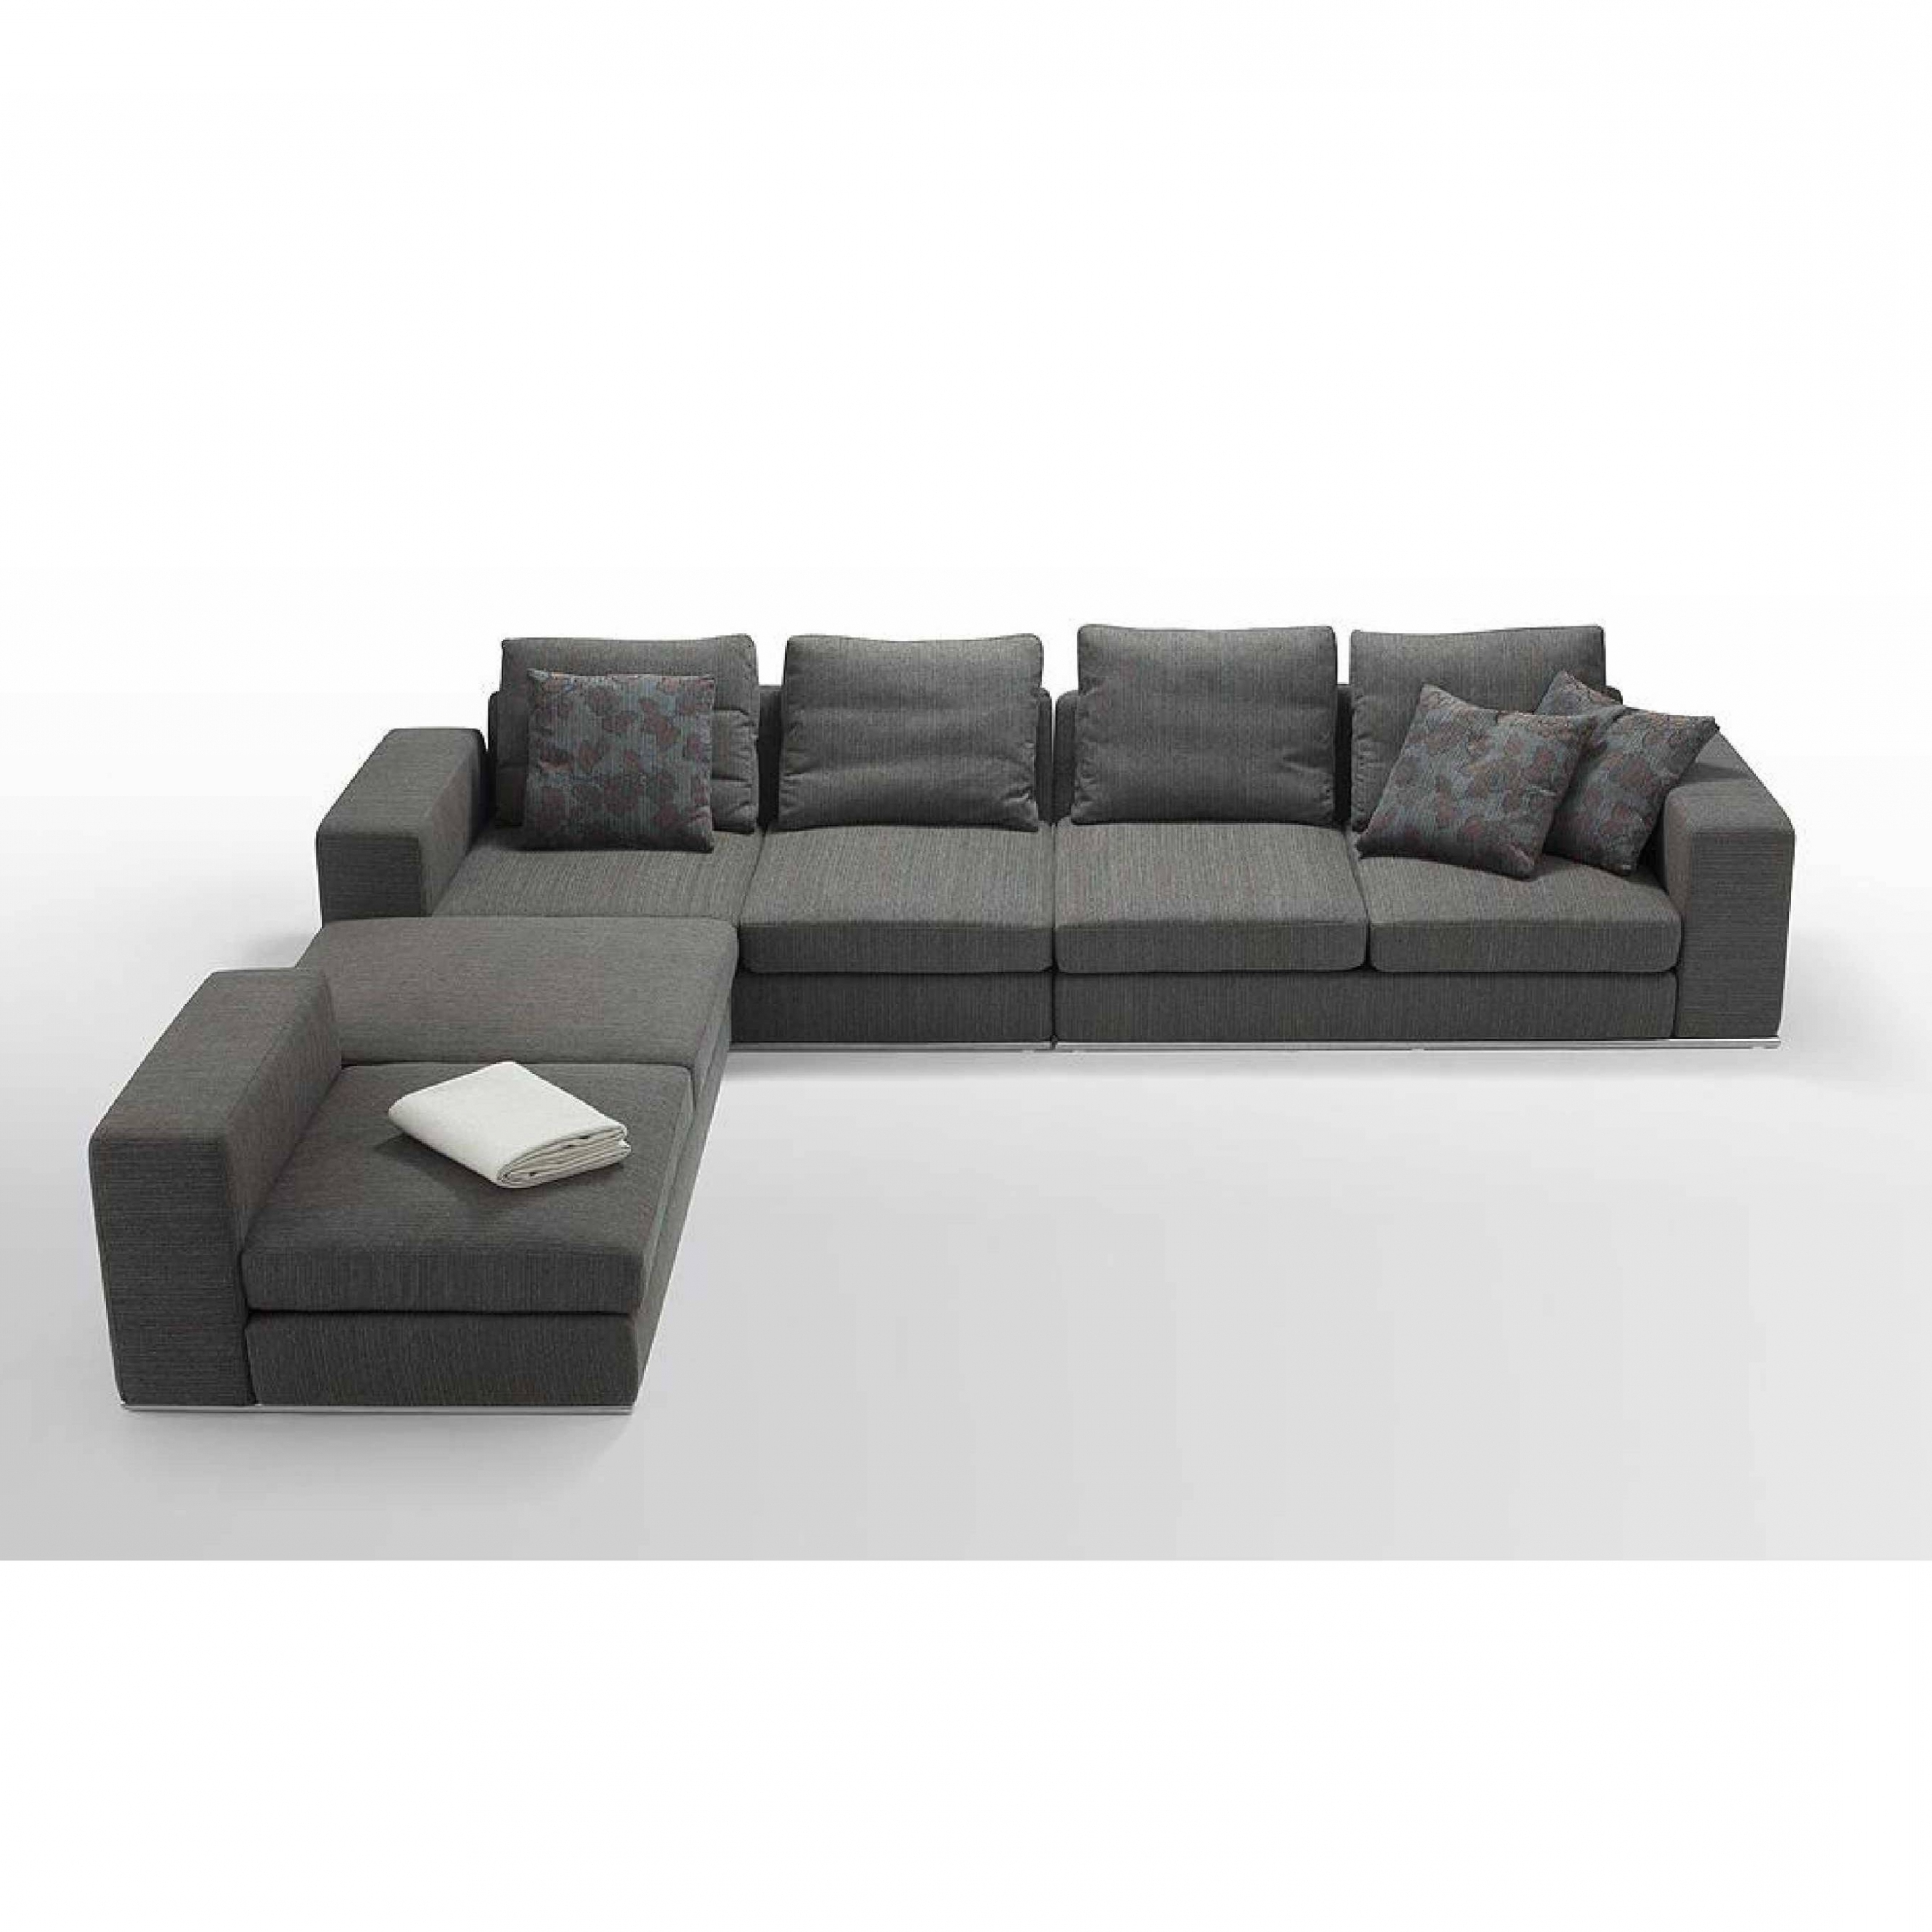 Furniture: Best 25 Of L Shaped Sectional Sleeper Sofa Pertaining Regarding Current L Shaped Sectional Sleeper Sofas (View 7 of 20)